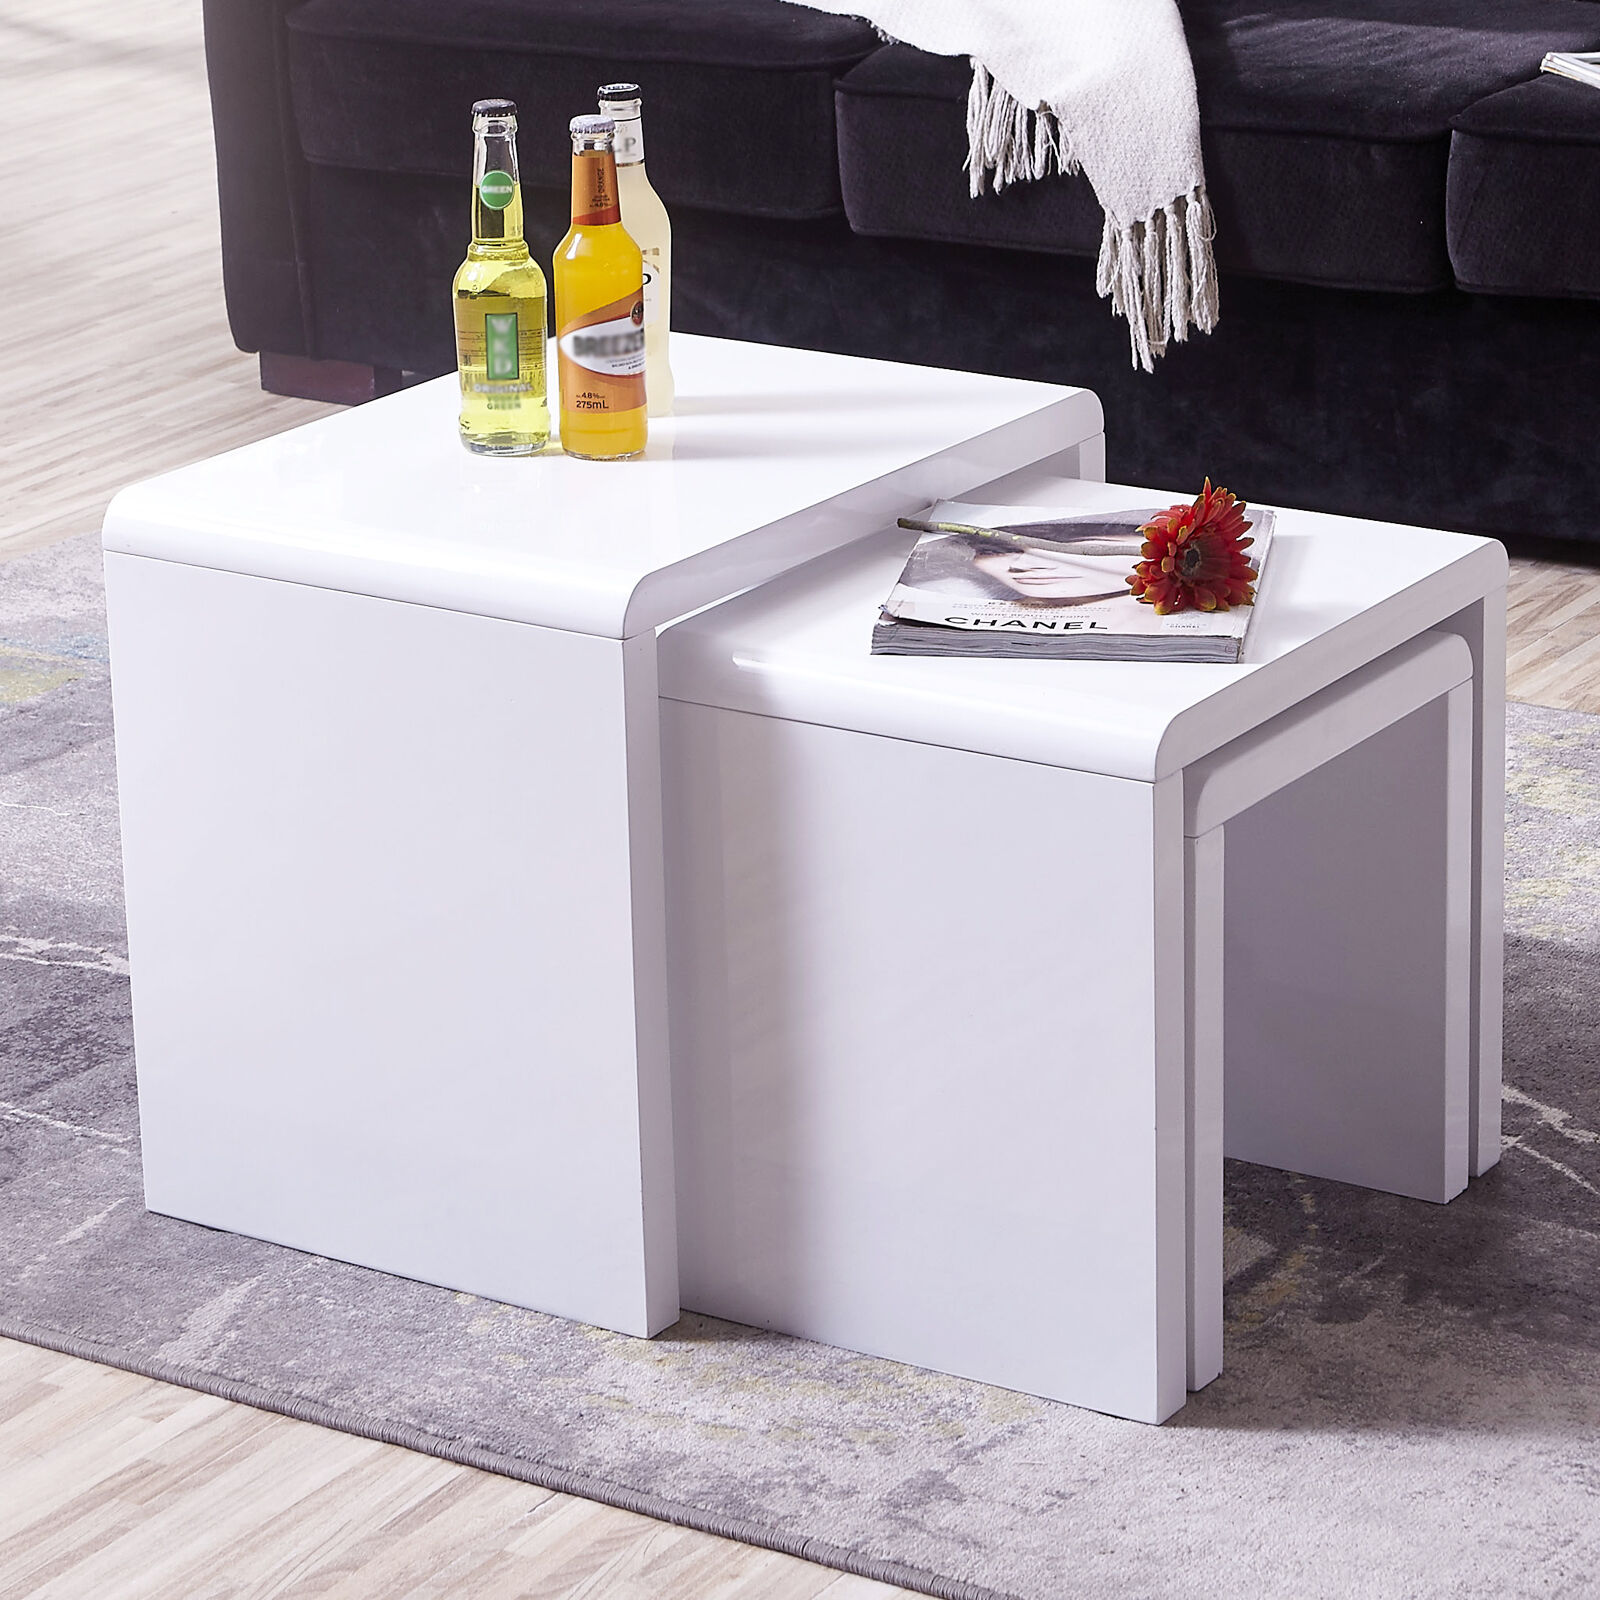 Nest Of 3 High Gloss White Curved Coffee Table Side Tables: New Modern Design High Gloss White Nest Of 3 Coffee Table